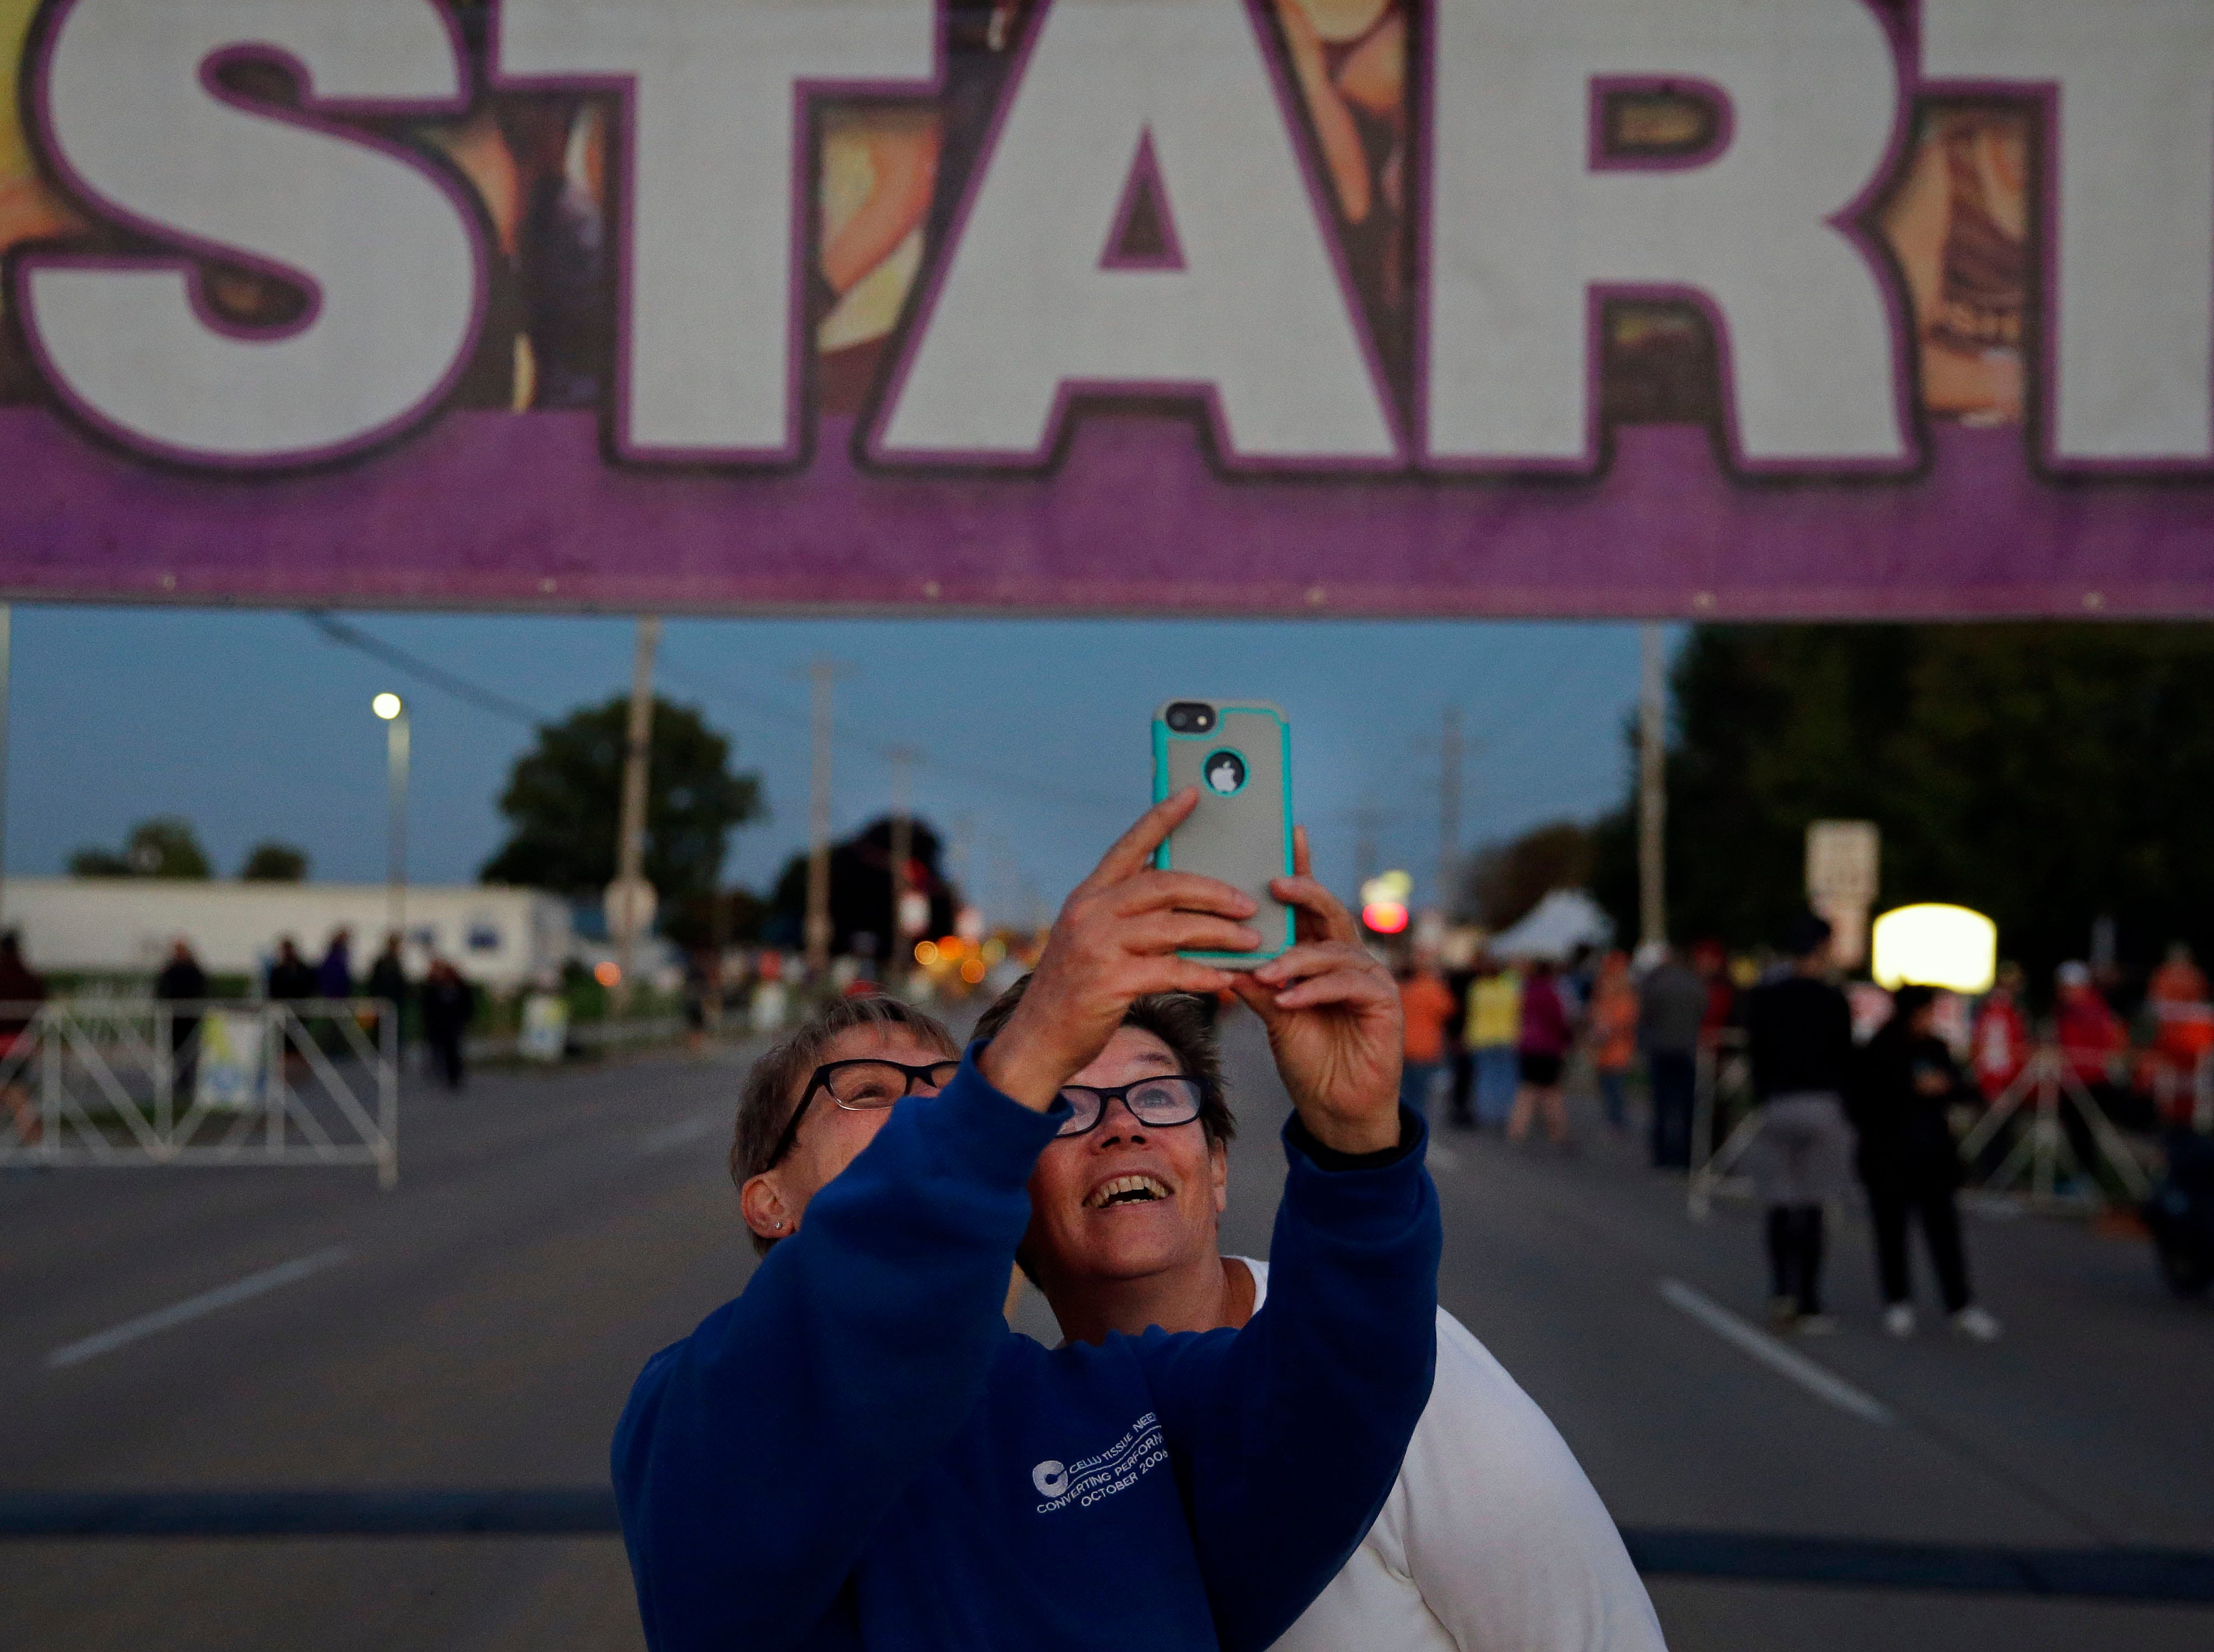 Christine Dancker, left, and JoAnn Burgett get a photo before the start of the Community First Fox Cities Marathon Sunday, September 23, 2018, across the Fox Cities.Ron Page/USA TODAY NETWORK-Wisconsin